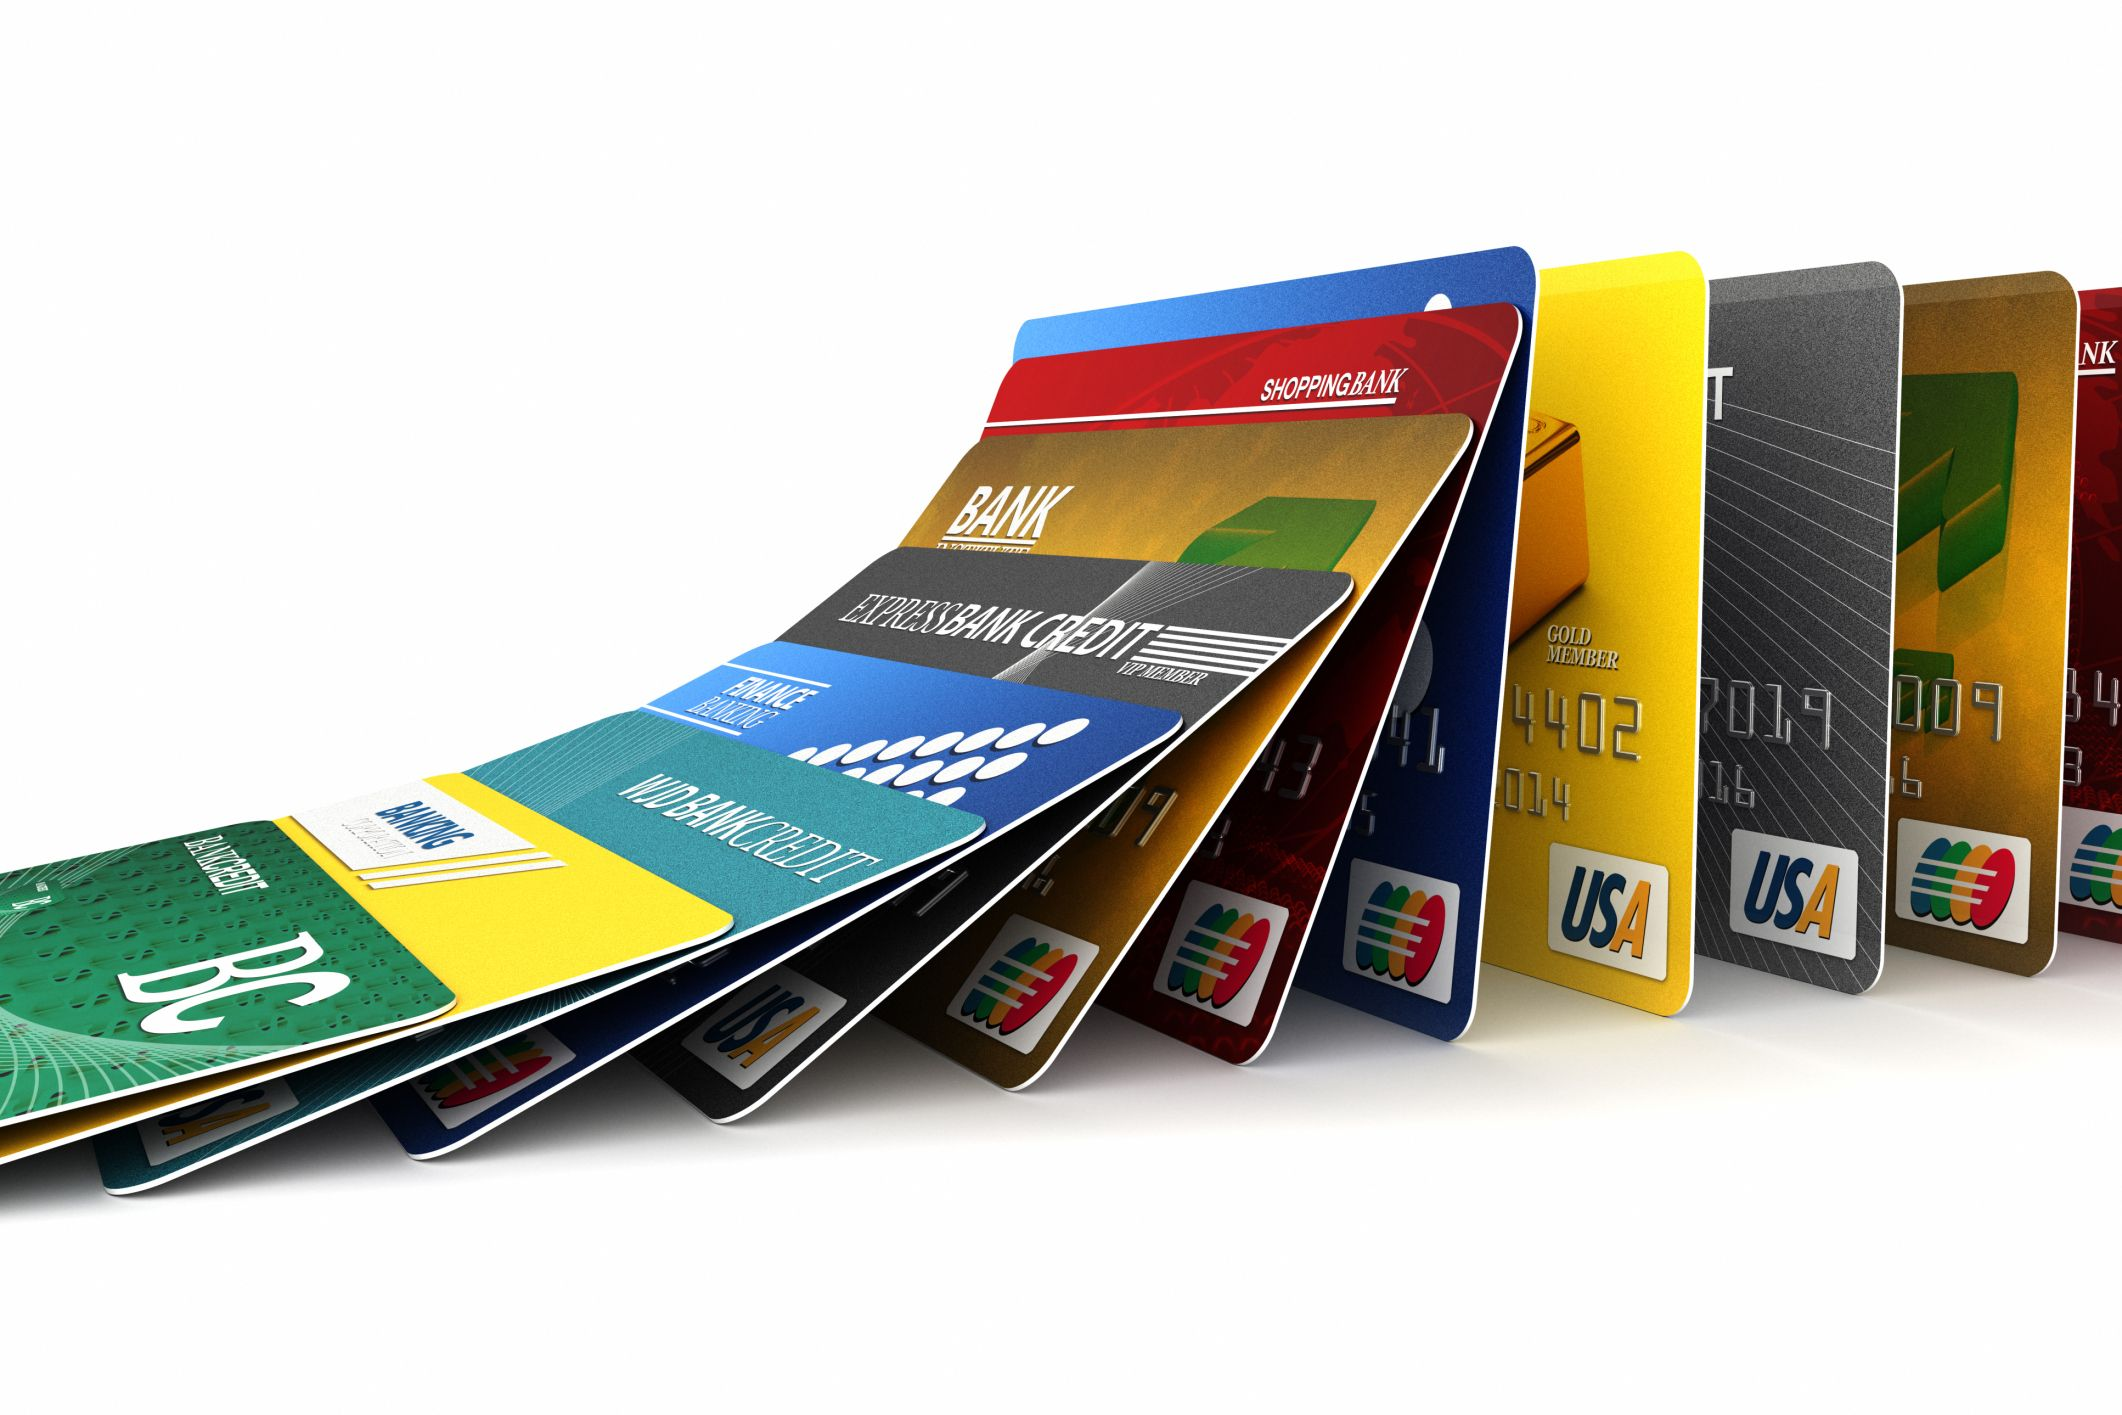 credit score Best credit cards, Credit card offers